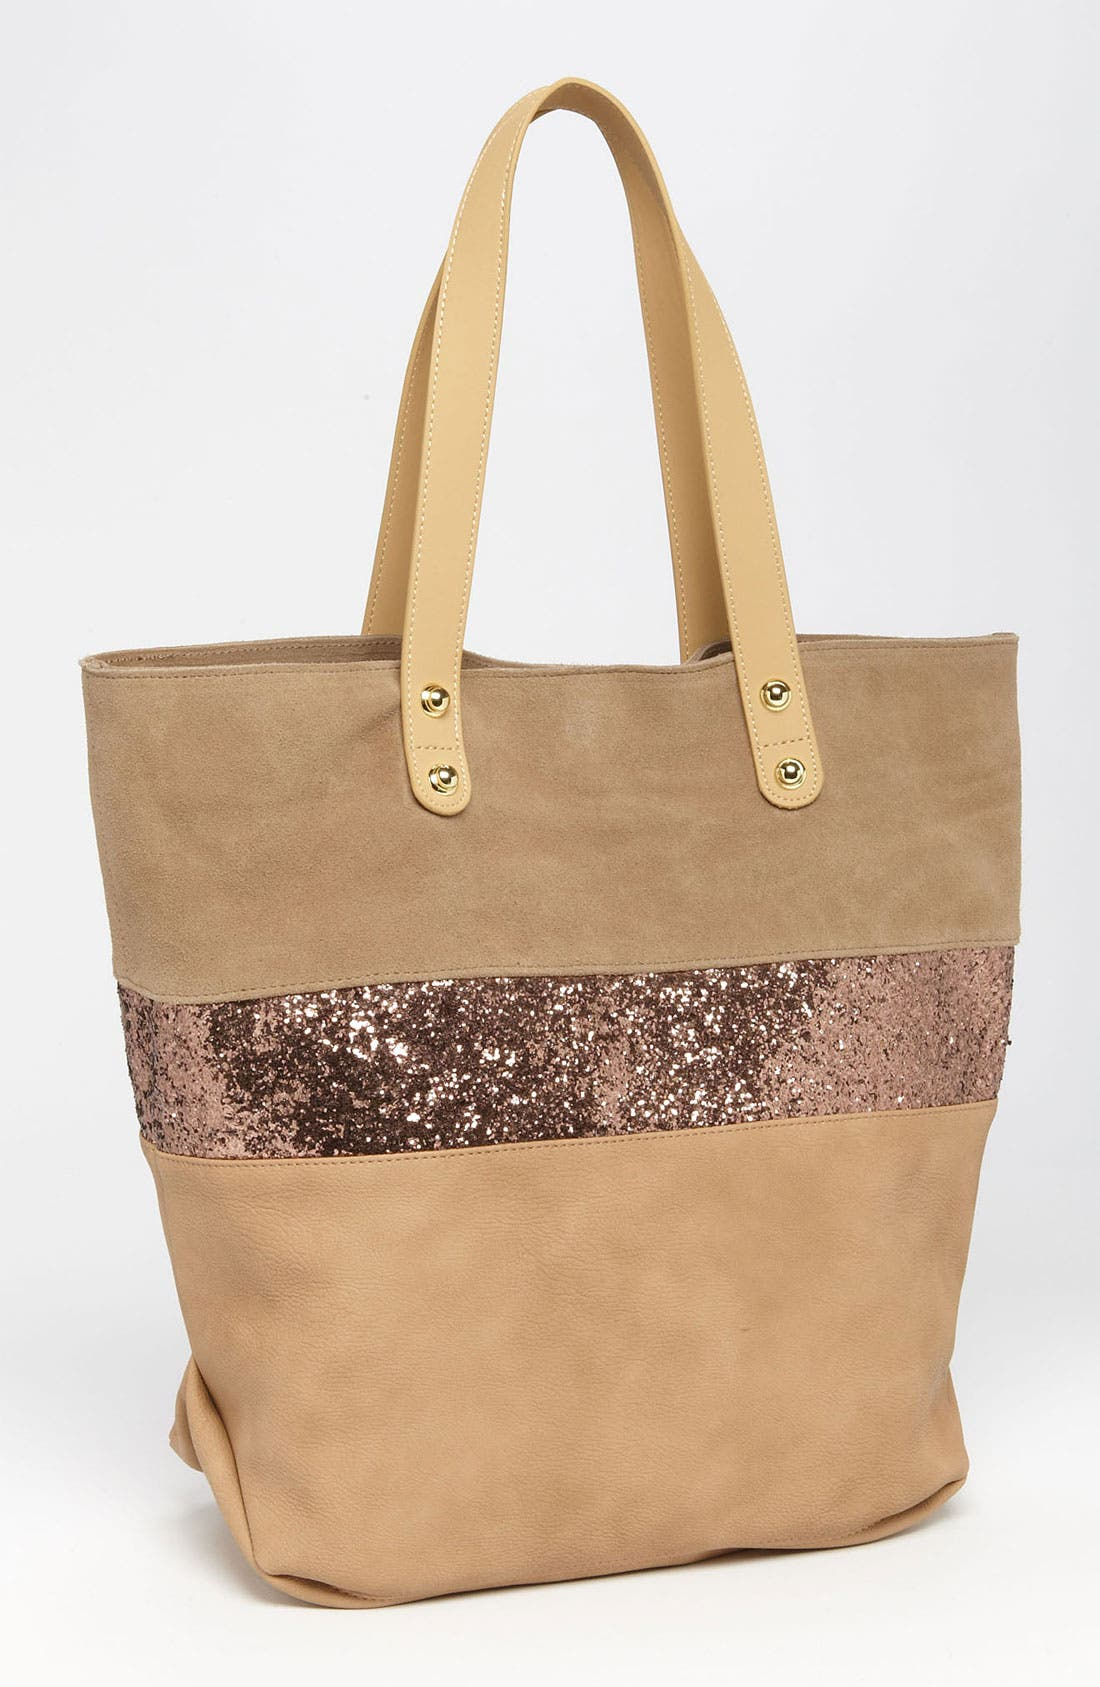 Main Image - Steve Madden 'All That Glitters' Tote